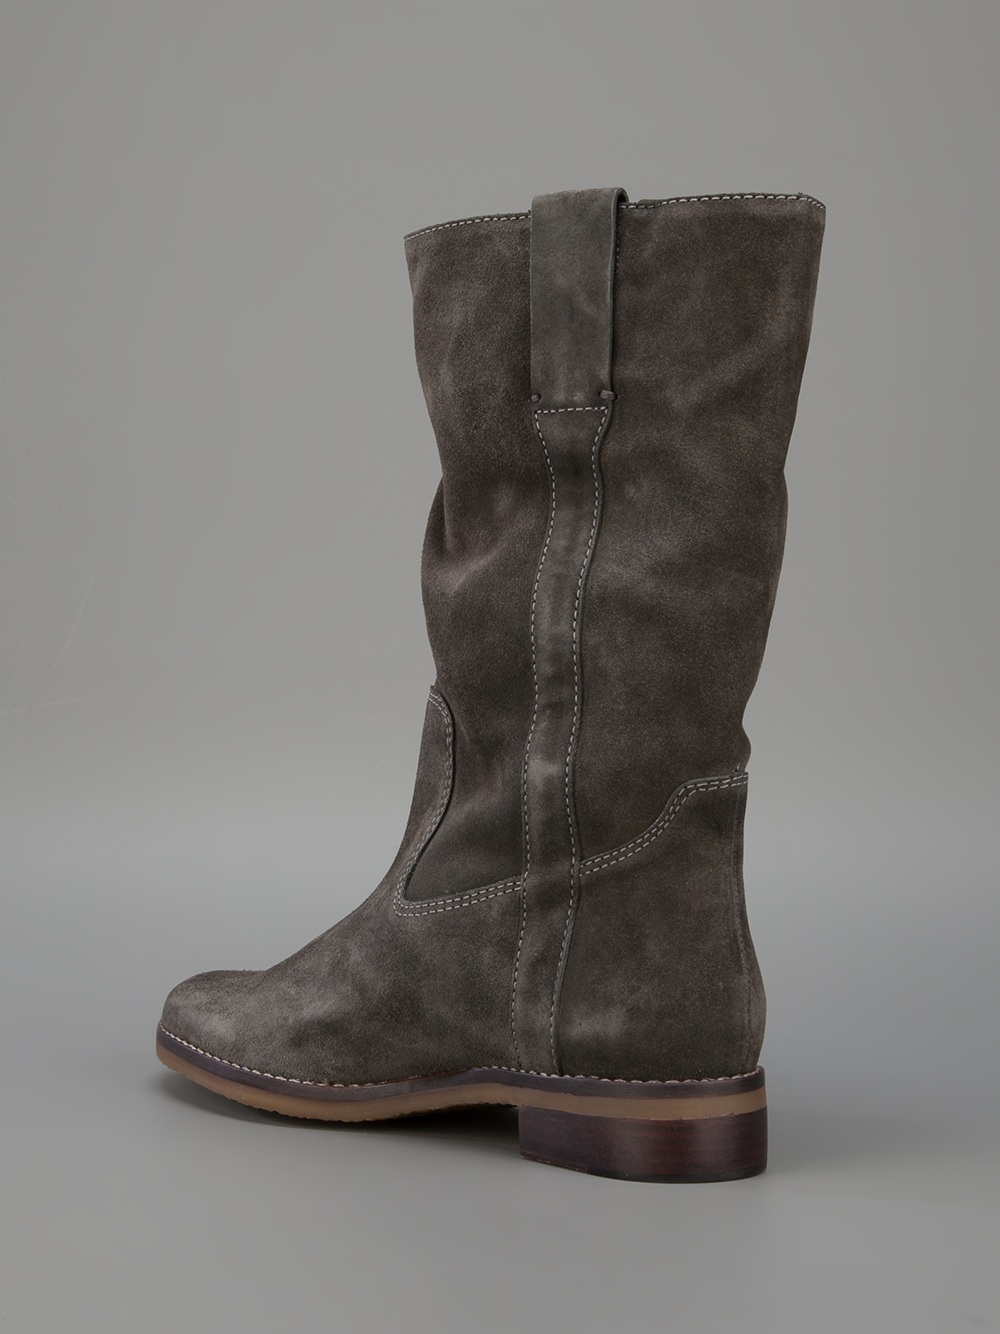 tila march suede boot in gray lyst